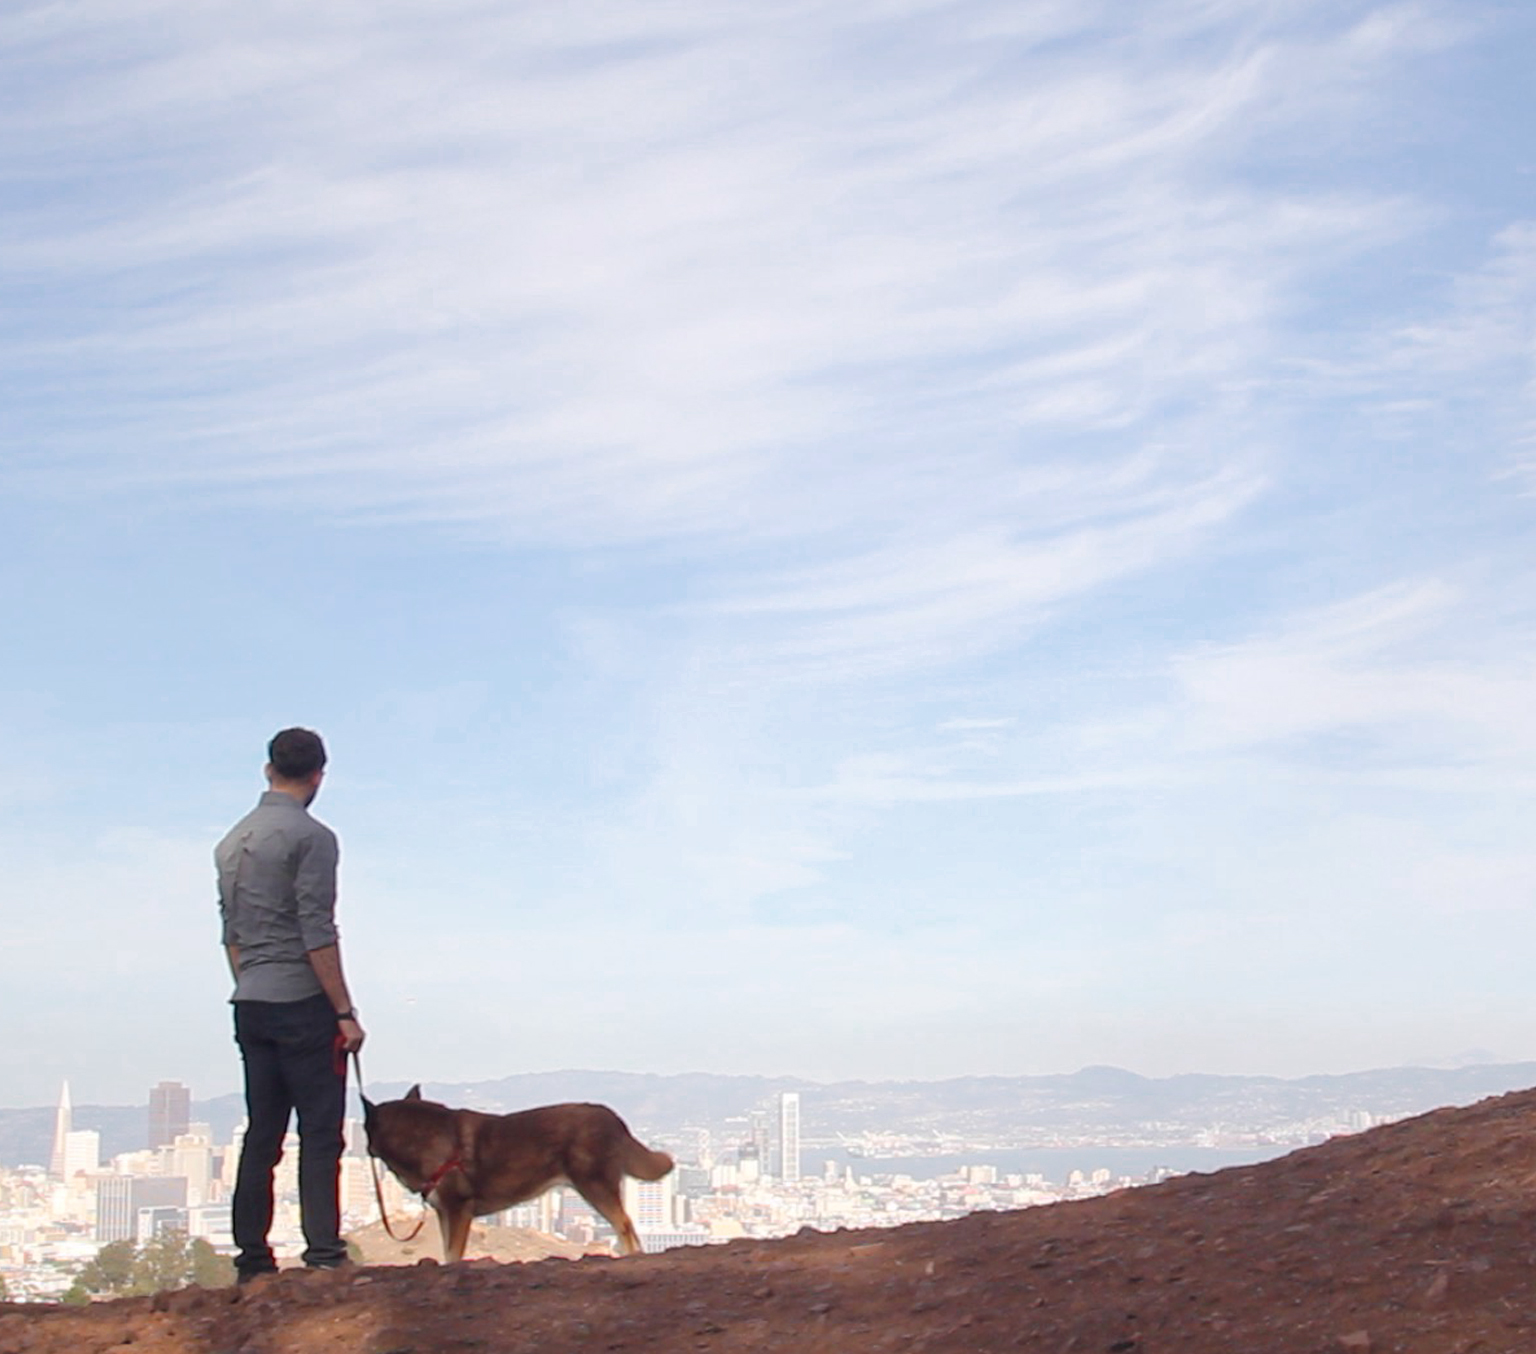 Man standing on hill with dog overlooking city